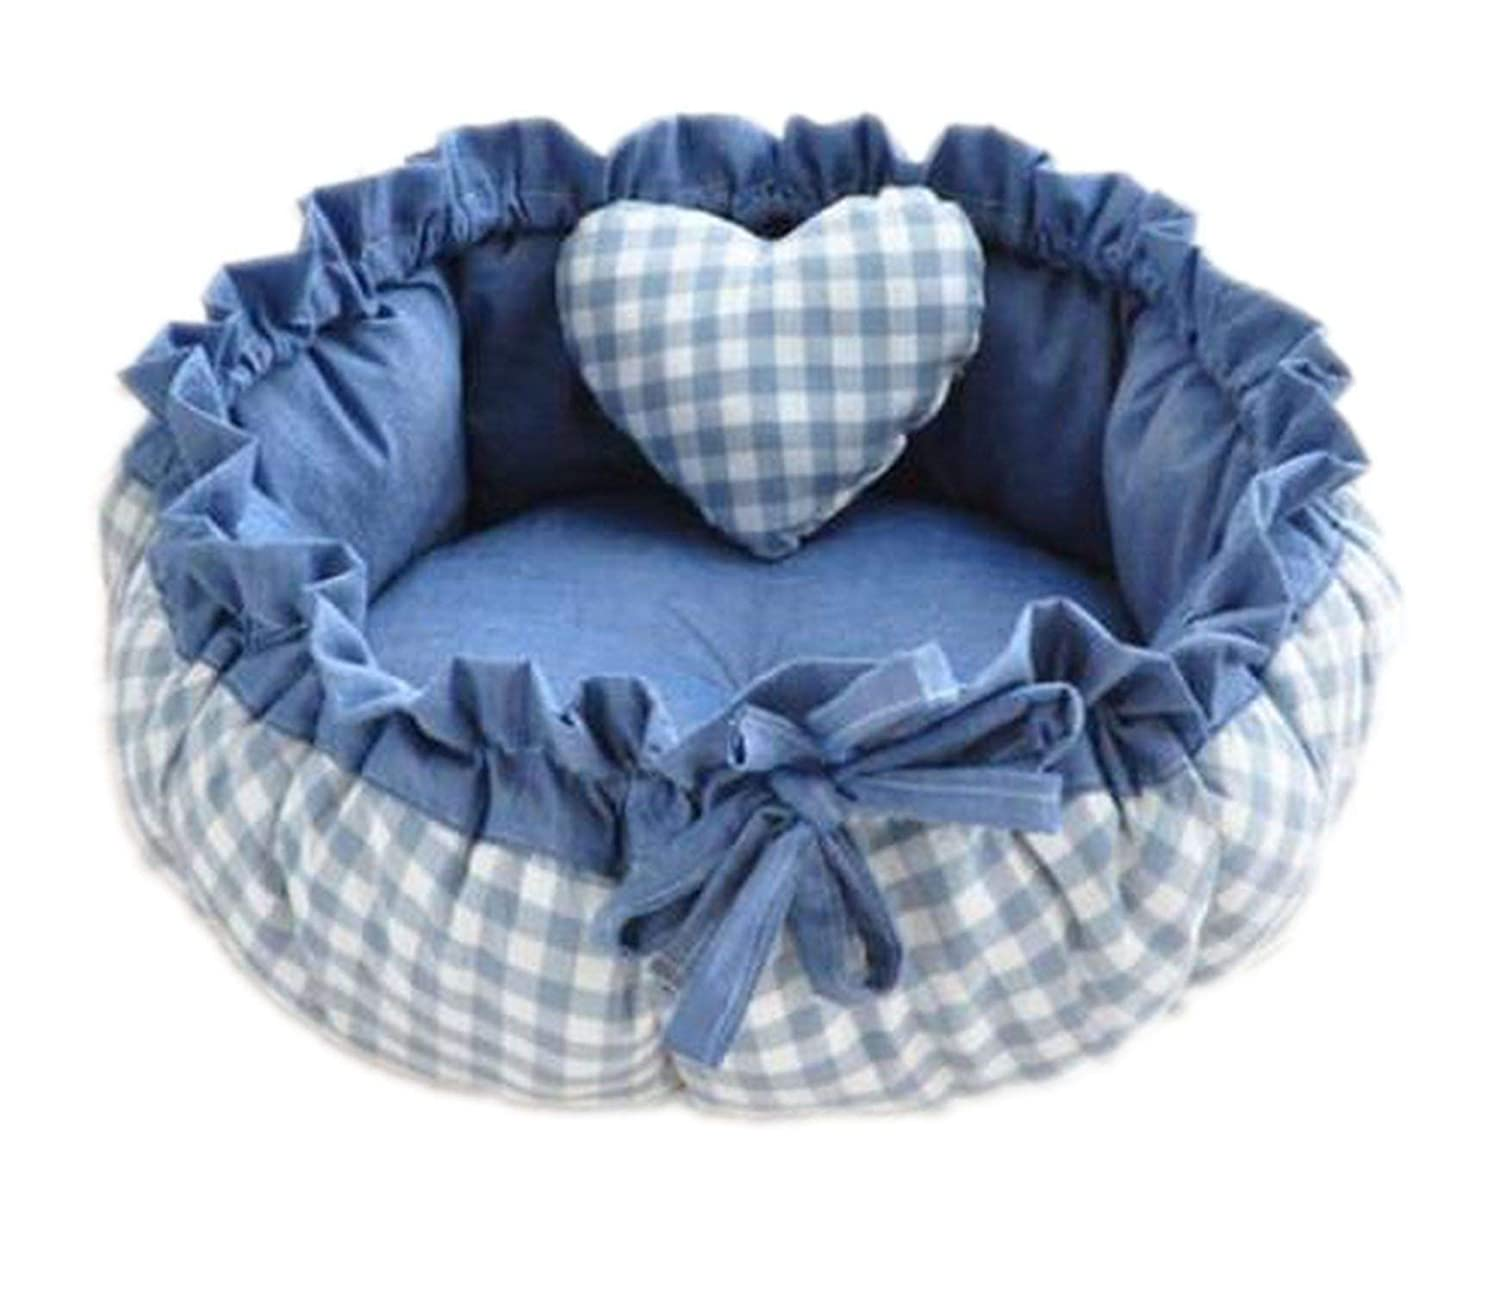 N15 S 40cmSweety Pet Dog Bed Cat Bed House Cushion Kennel Sofa with Pillow Warm Sleeping Bag,N13,M 50cm